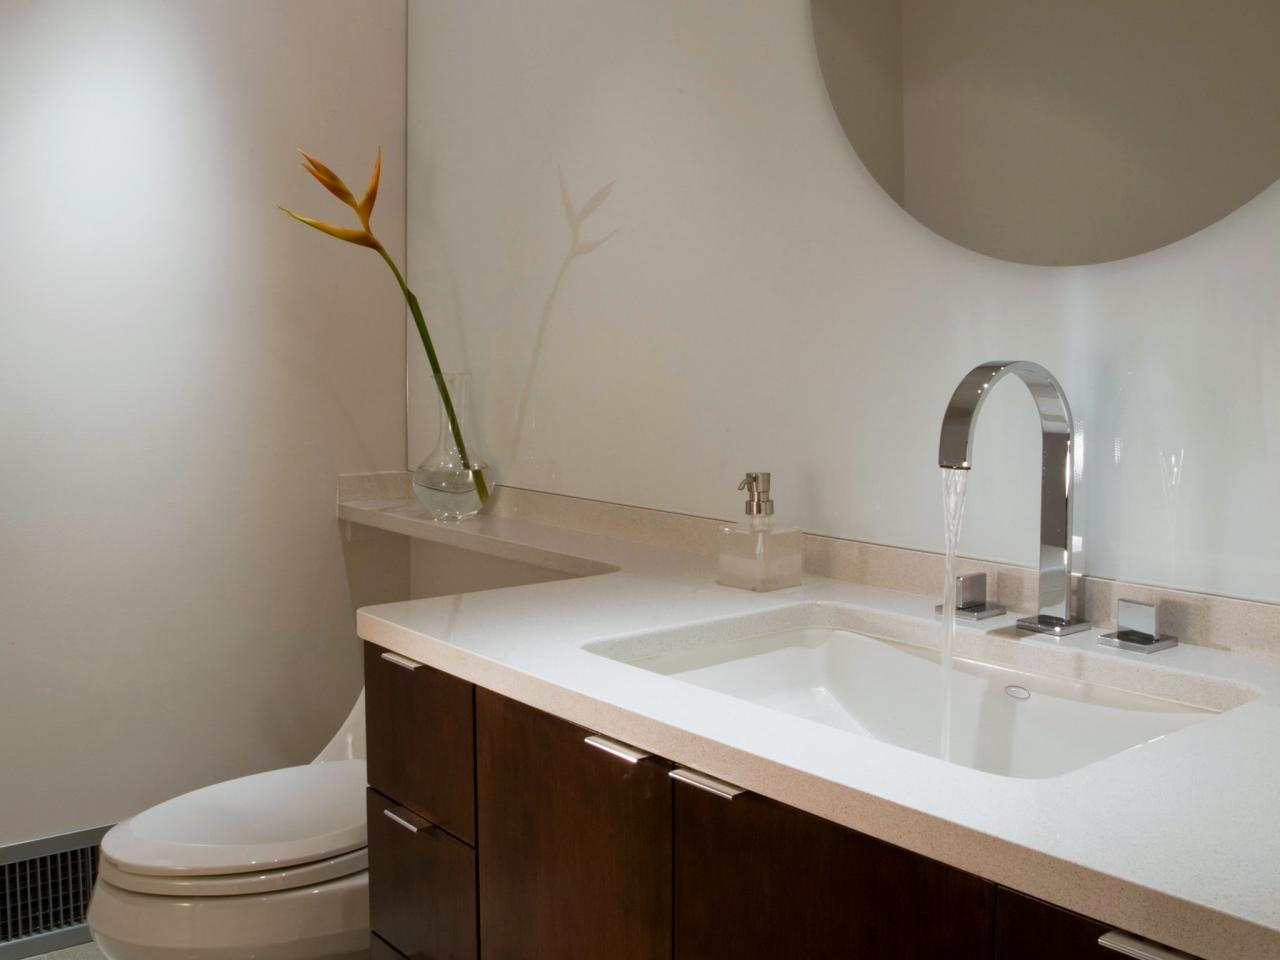 Solid surface bathroom countertop options hgtv for Bathroom countertops